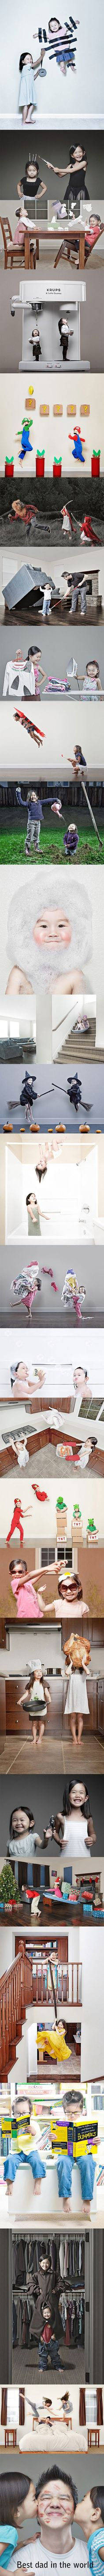 Best Dad in the world.   fun and funny photo-manipulation and virtual renders